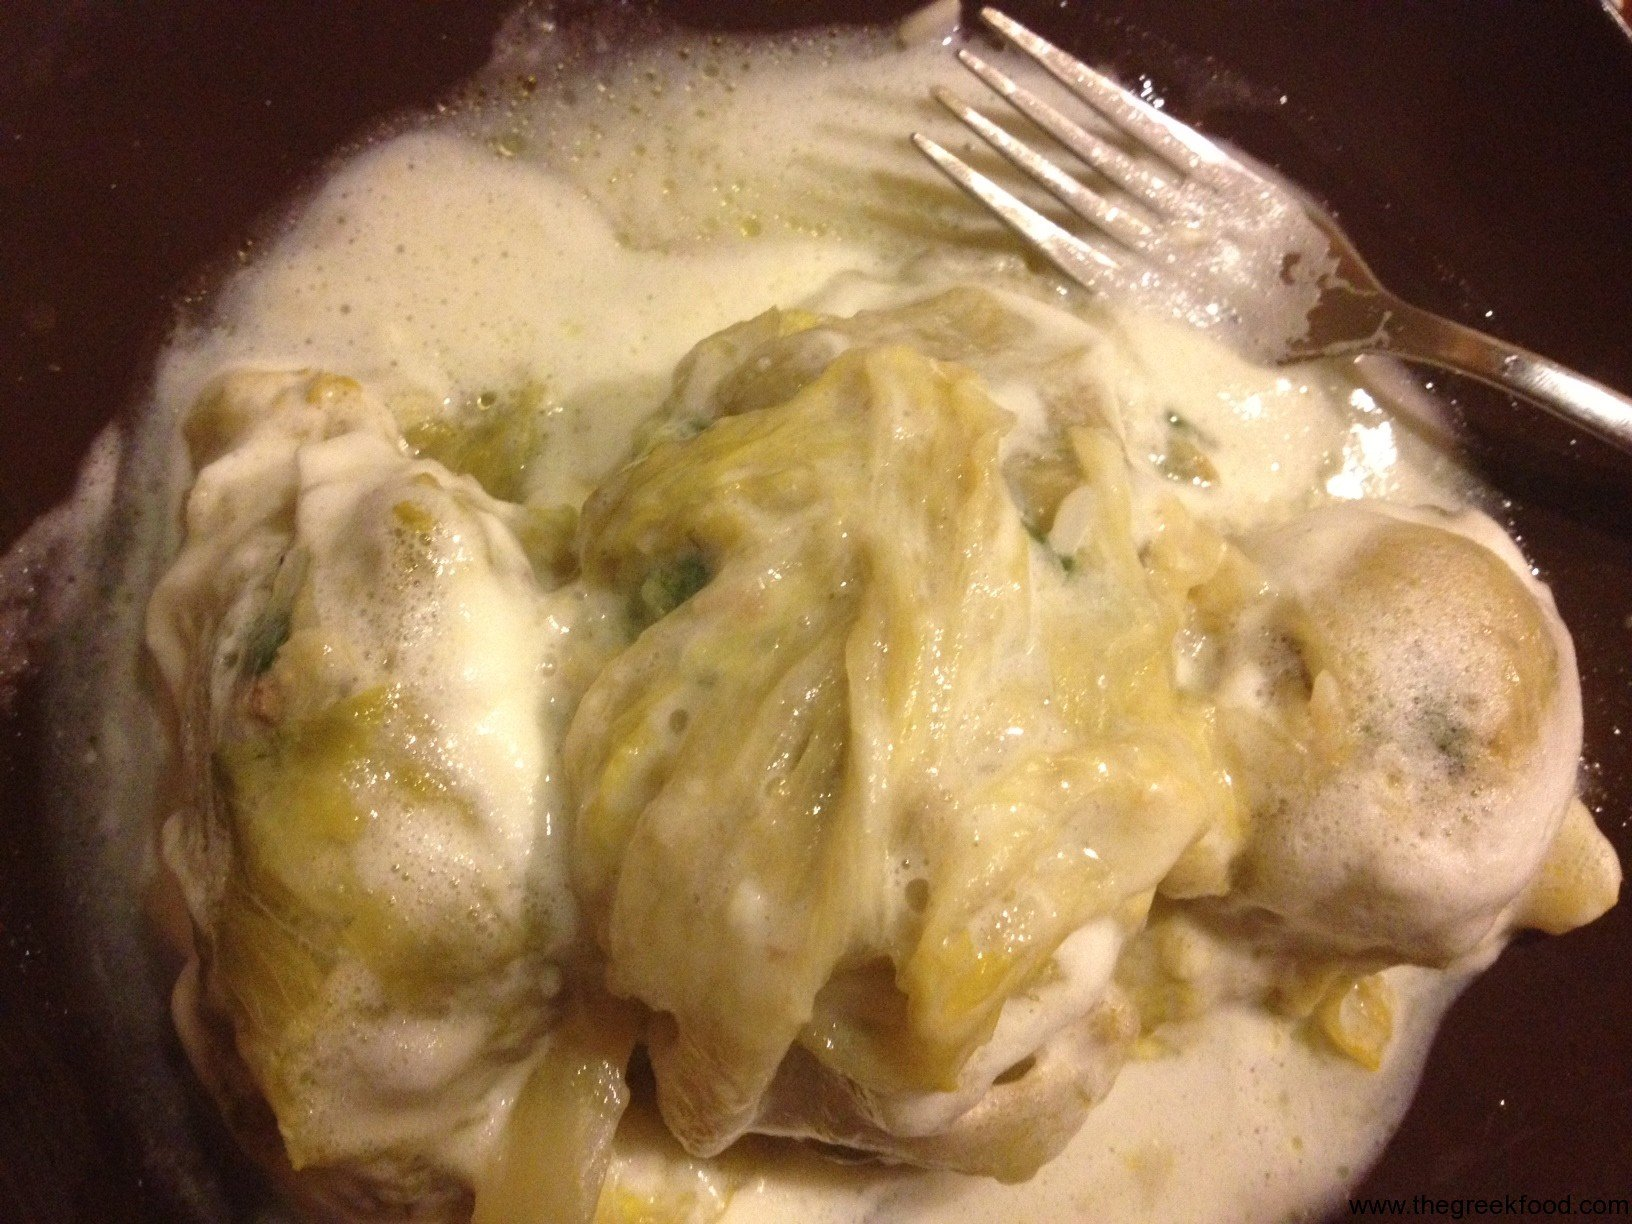 Making Lachanodolmades – stuffed cabbage leaves